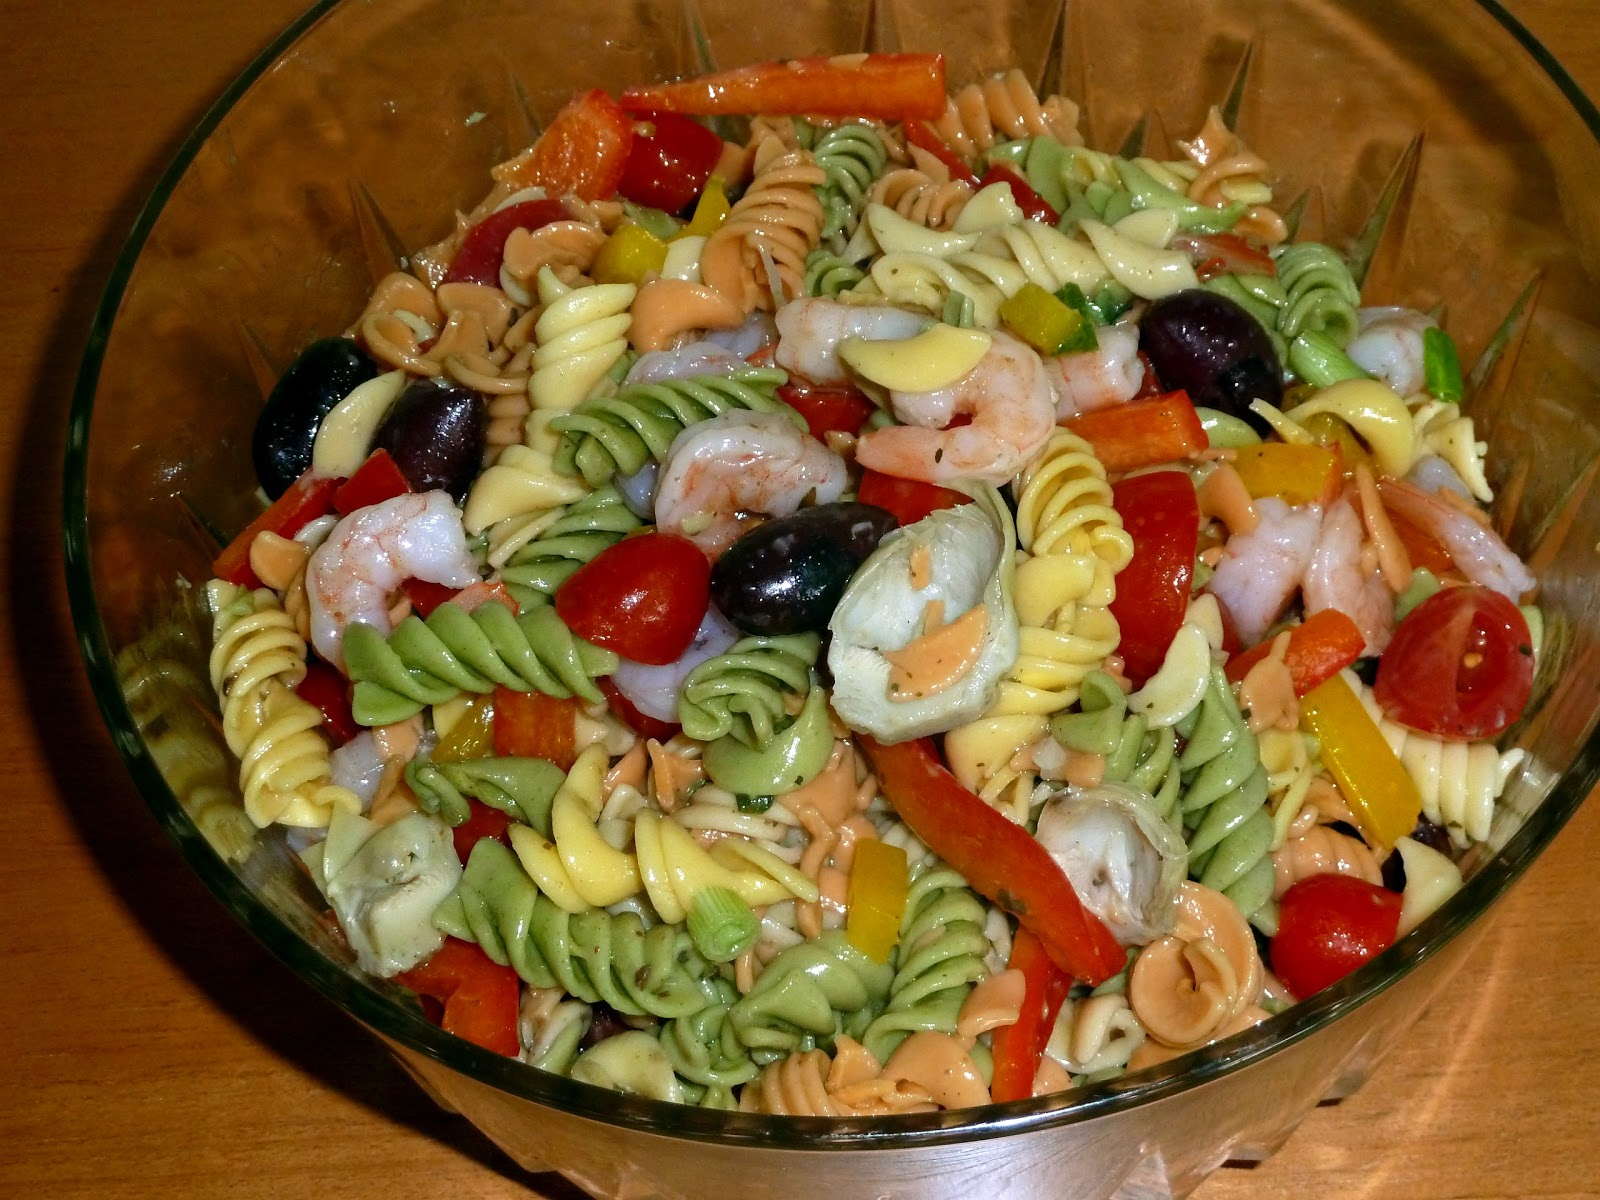 ... and Cooking, A Tale of Two Loves: Mediterranean Pasta Salad and More